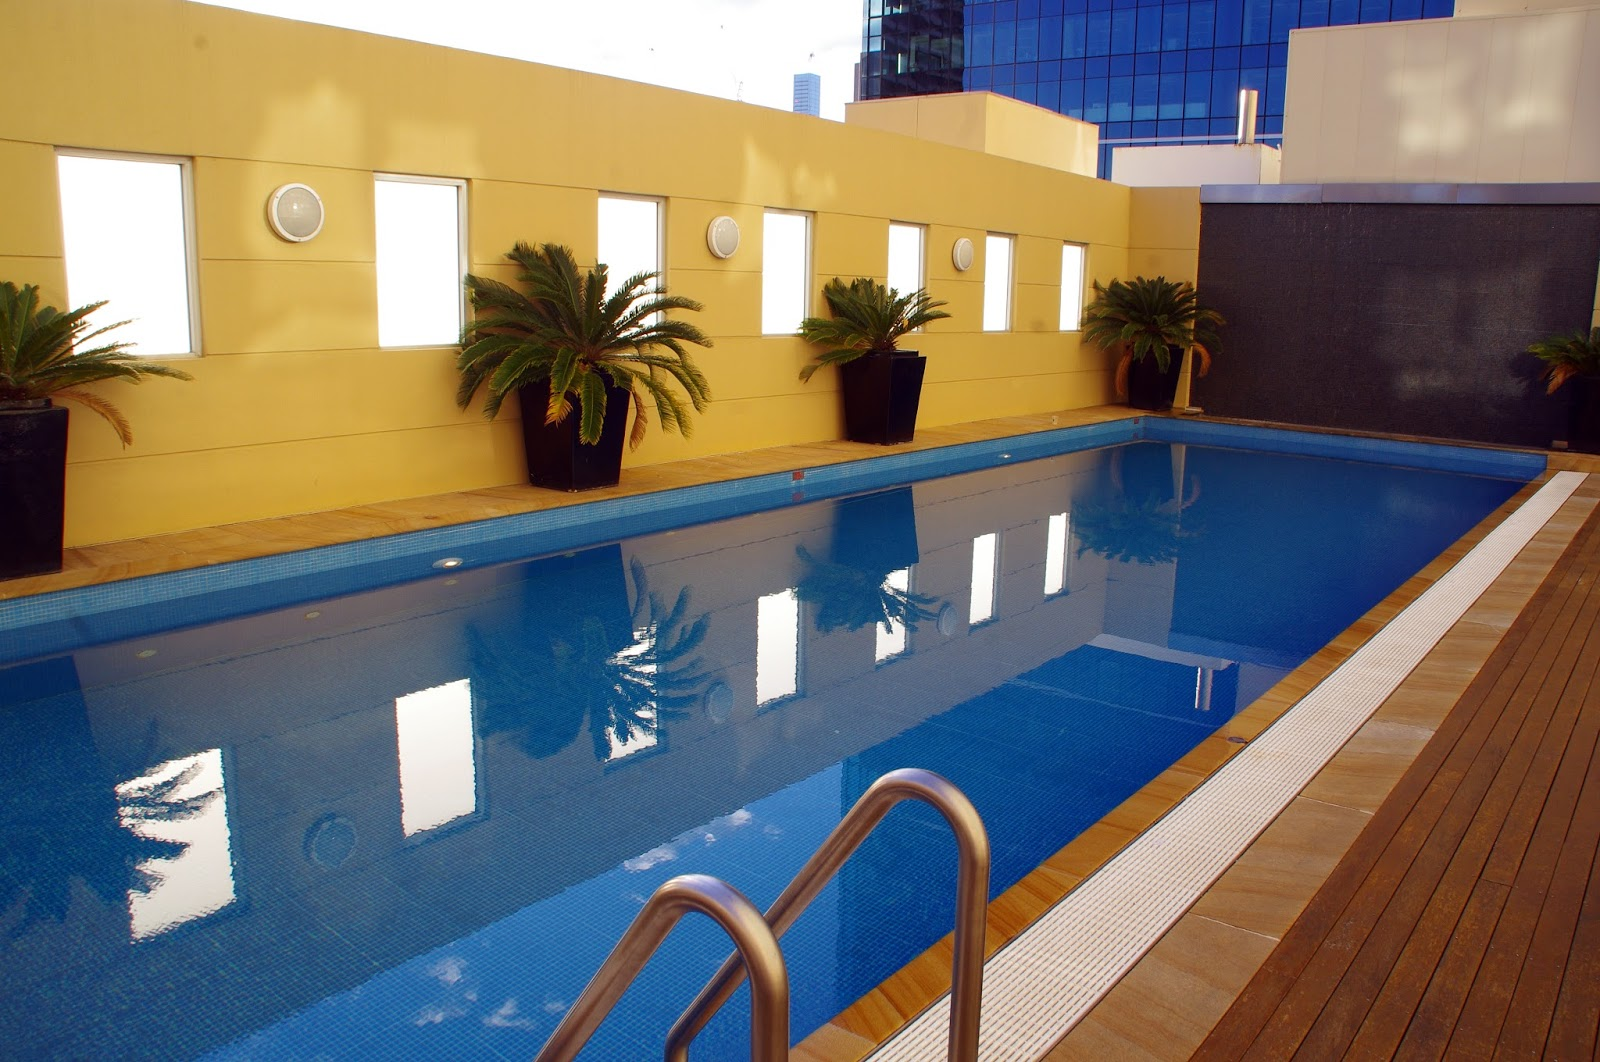 Swimming pool at swissotel sydney